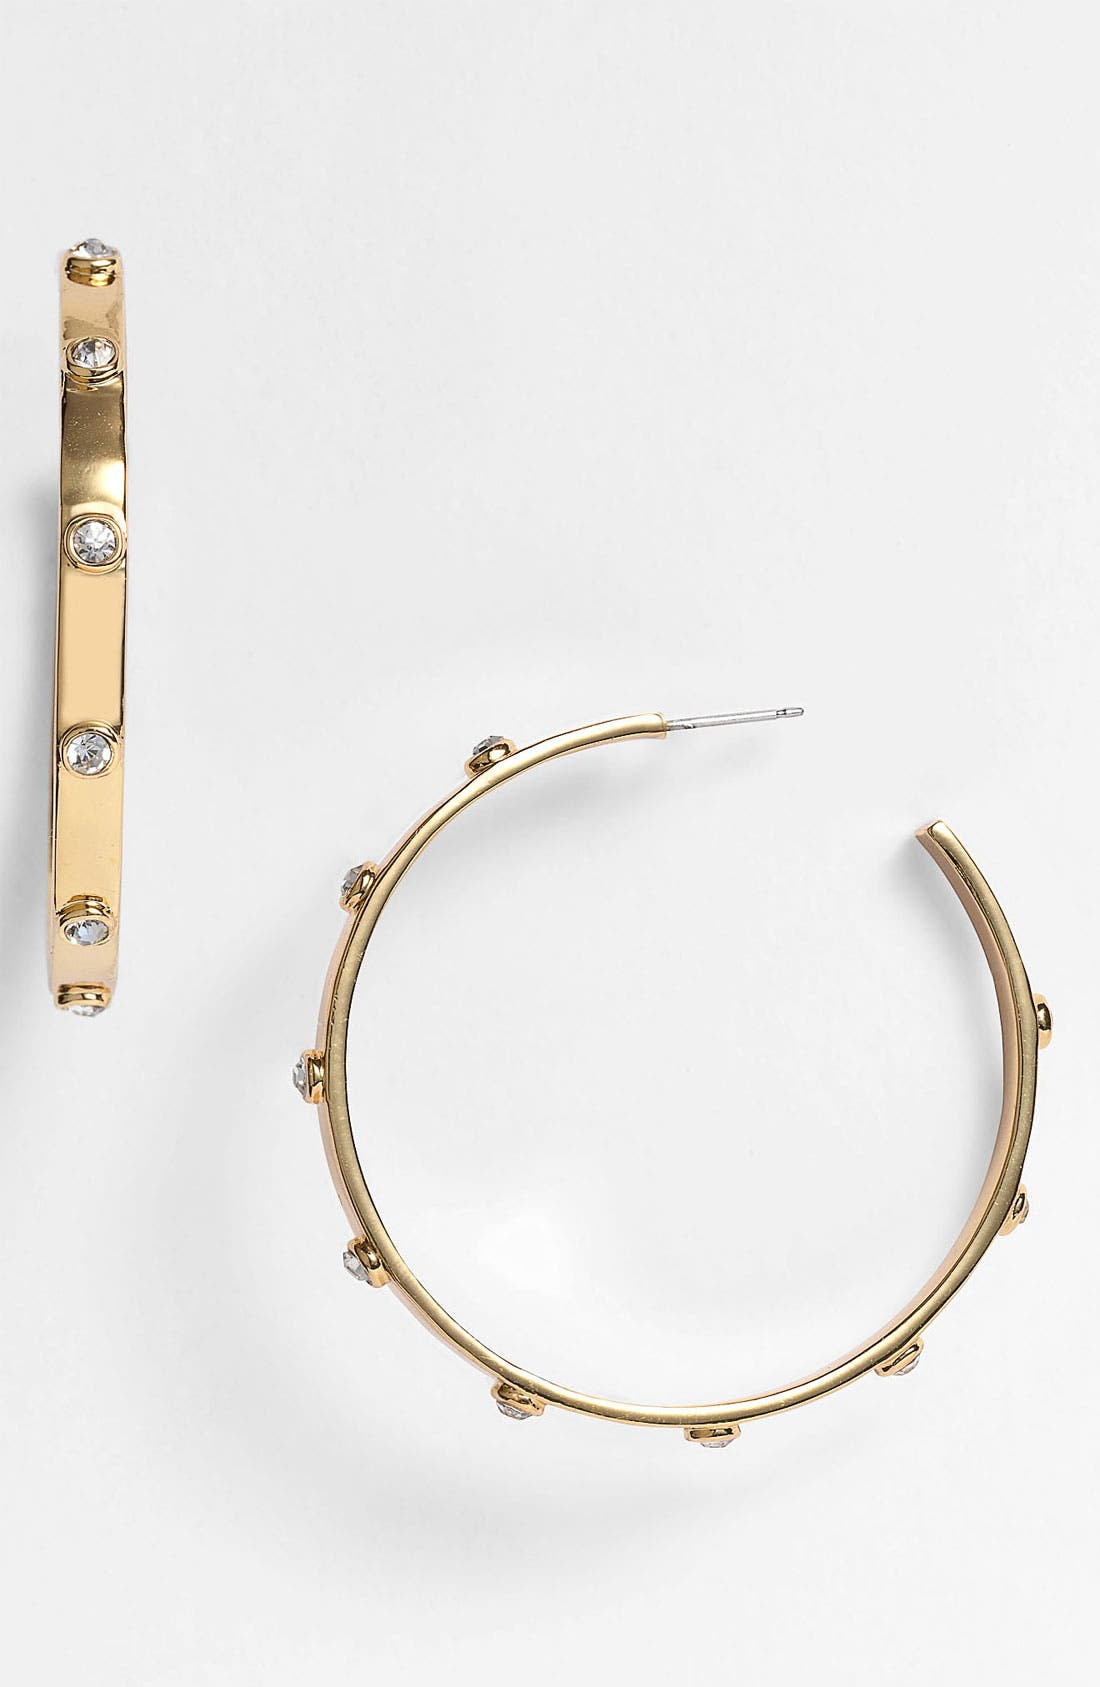 Main Image - Vince Camuto 'Speakeasy' Hoop Earrings